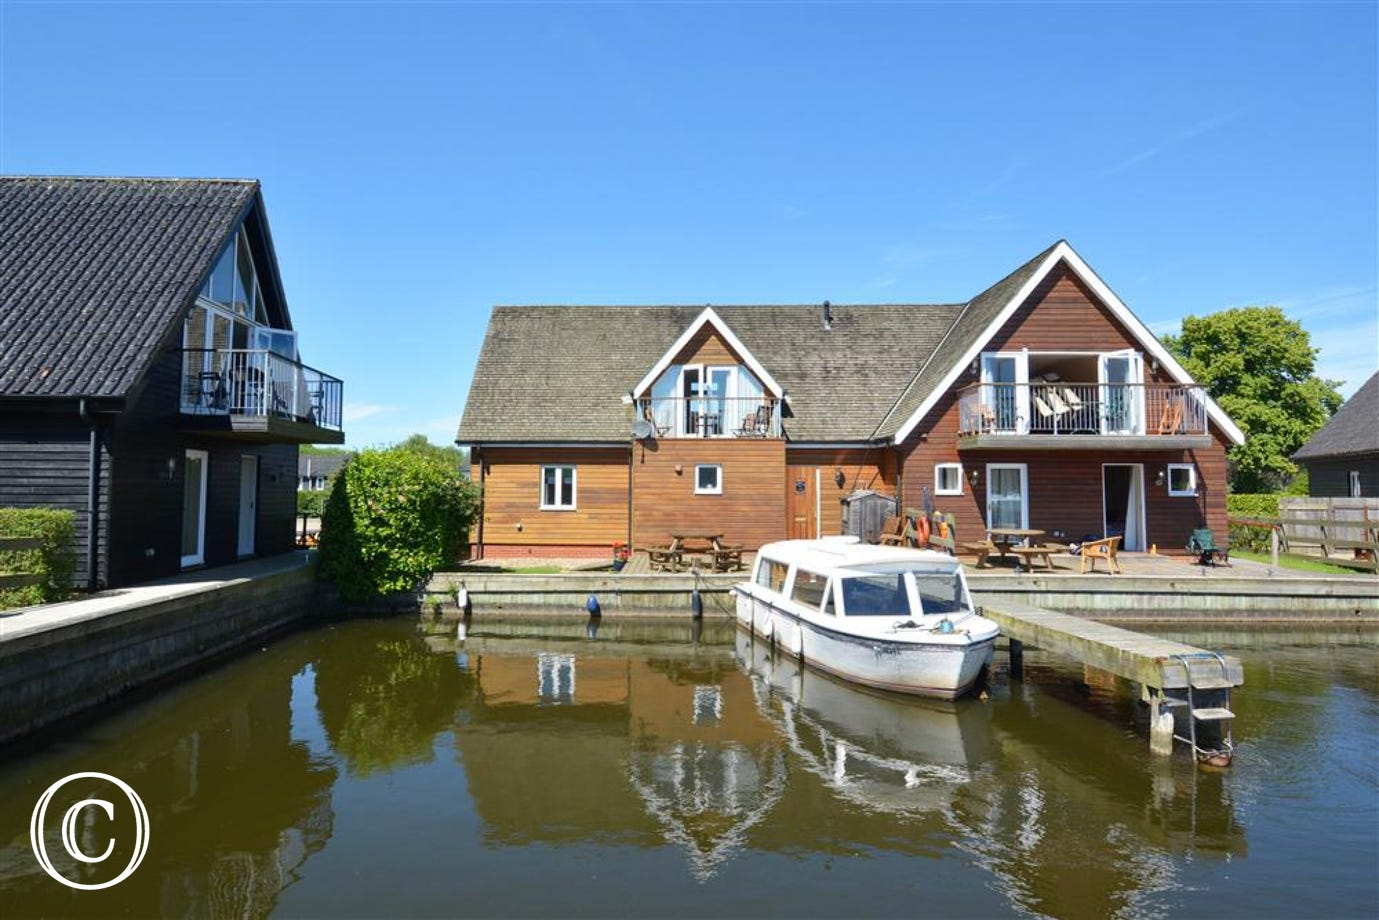 Exterior image of this delightful waterside property